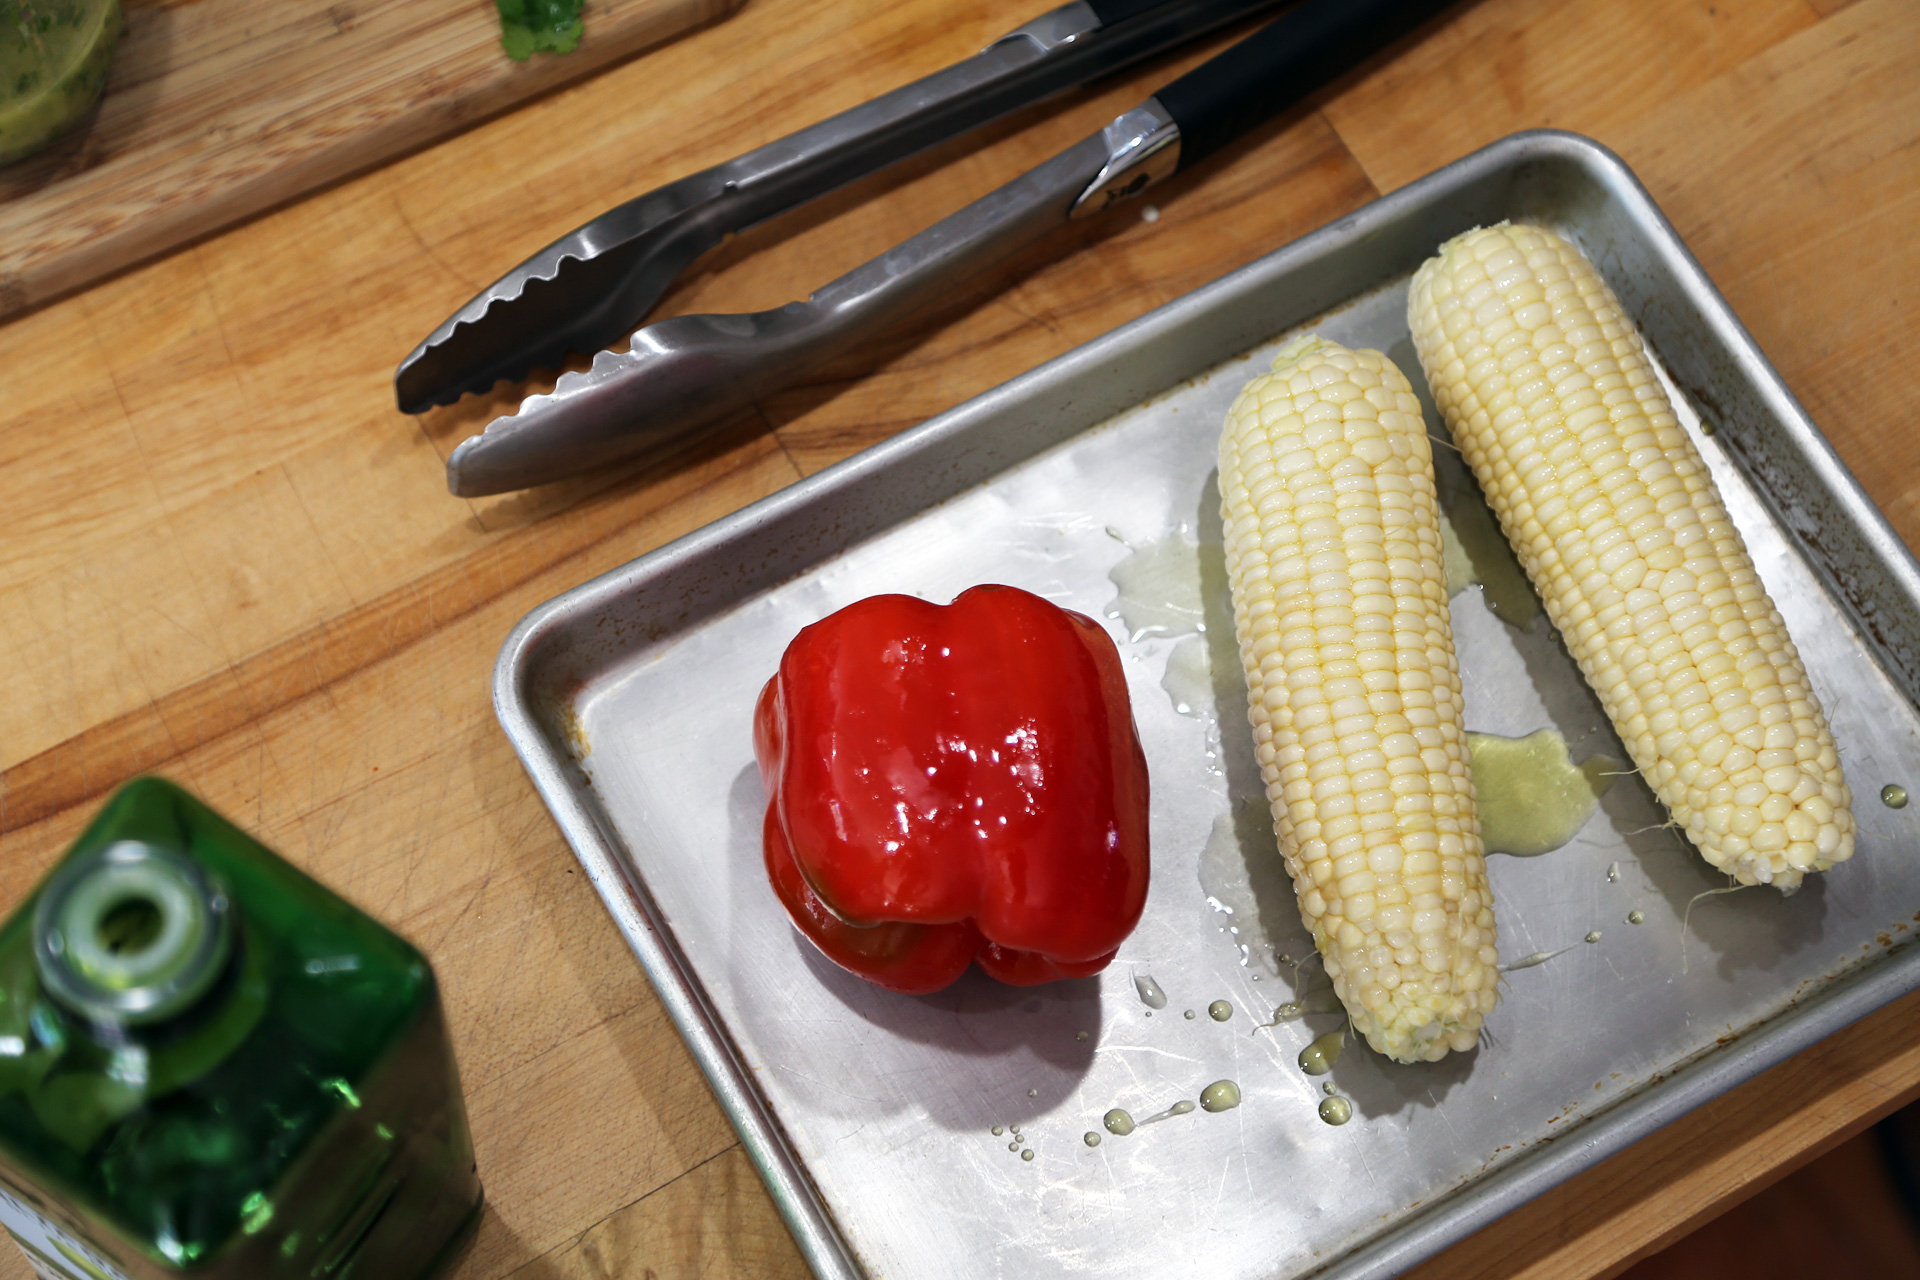 Coat the corn and pepper in olive oil.